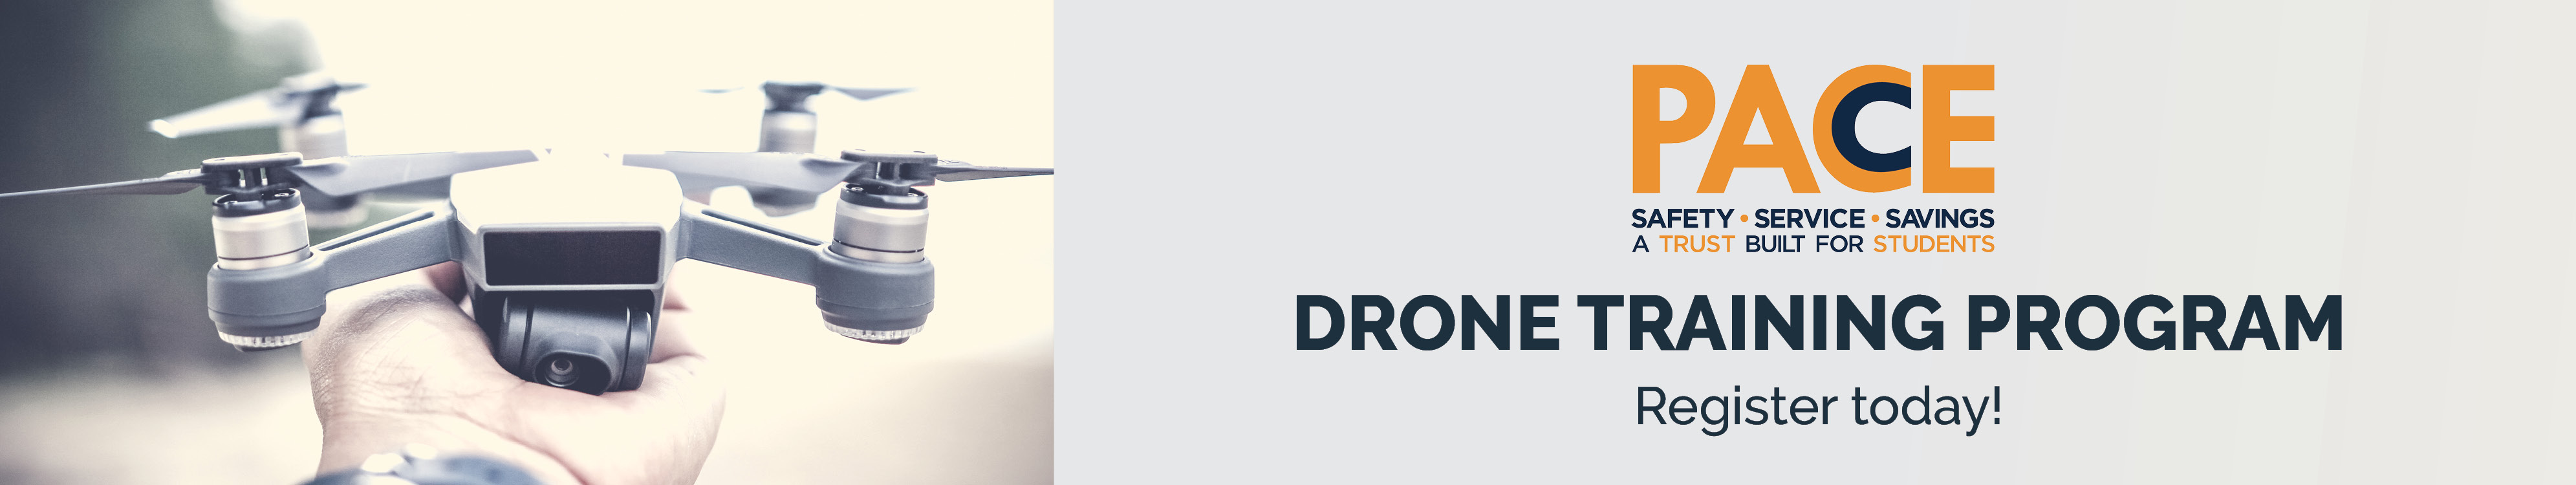 2019 PACE Drone Training Program